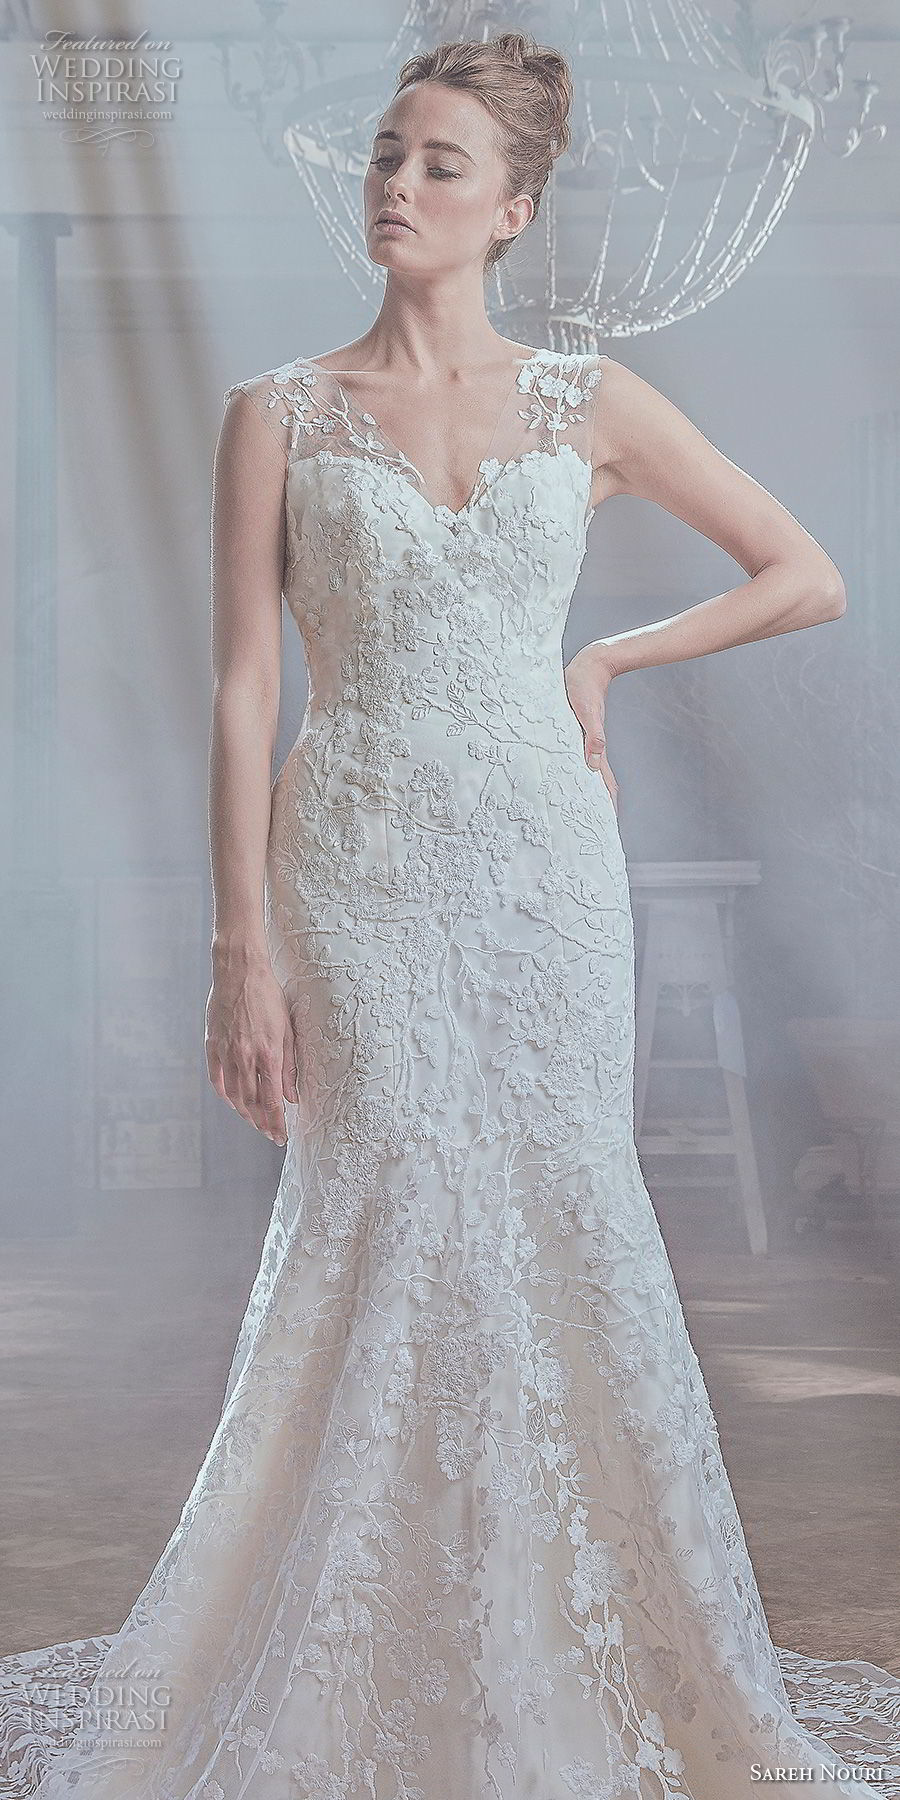 Outstanding Bridal Gowns Okc Ensign - Womens Dresses & Gowns ...